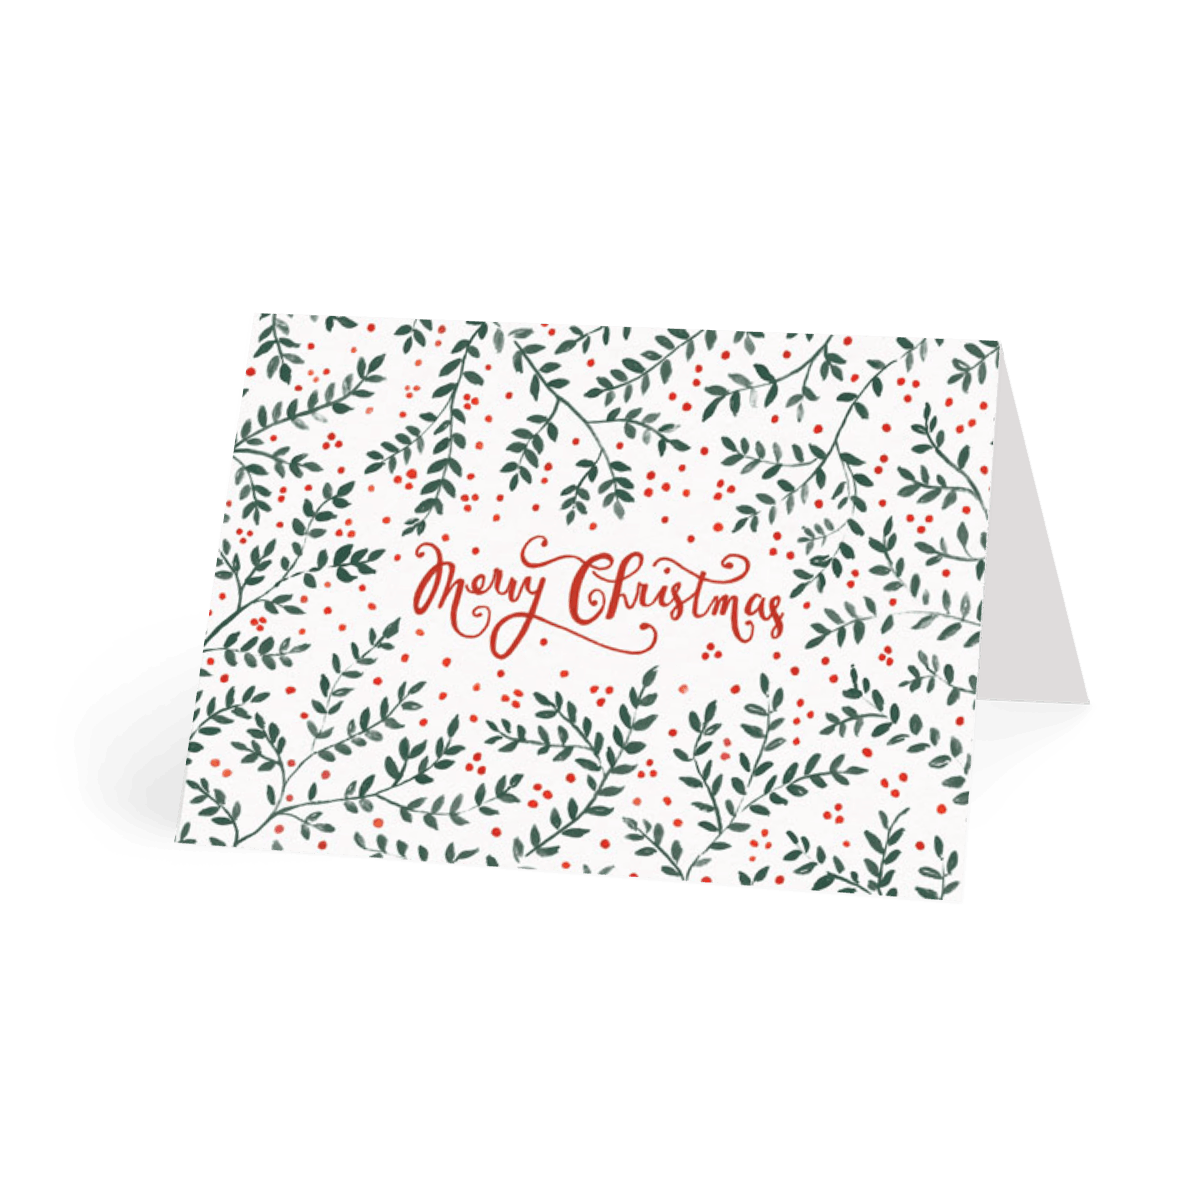 Https%3a%2f%2fwww.papier.com%2fproduct image%2f30084%2f14%2fditsy christmas berries 7585 front 1509028243.png?ixlib=rb 1.1